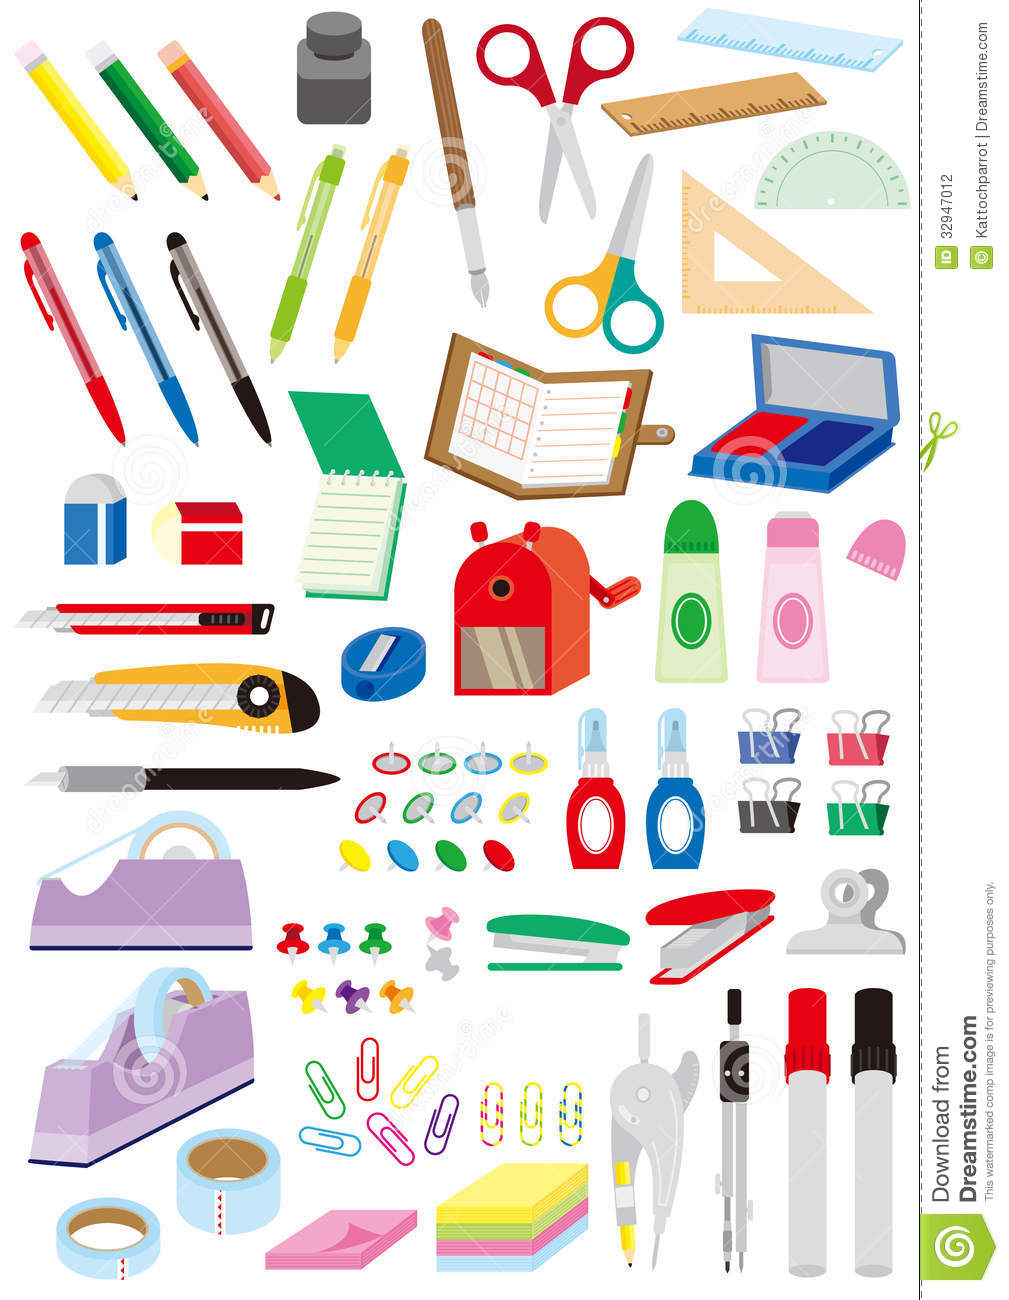 Stock Photography Stationery Lot Items Image32947012 as well 8514852 as well Vector Winter Landscape Snow Covered Forest Frozen River And The Blue Sky With White Clouds Vector 2608006 further Moen Kitchen Faucet Parts Diagram Pegasus Bathroom Shower Cleandus Funlscol in addition Floor Plans Elevations. on park view house plans